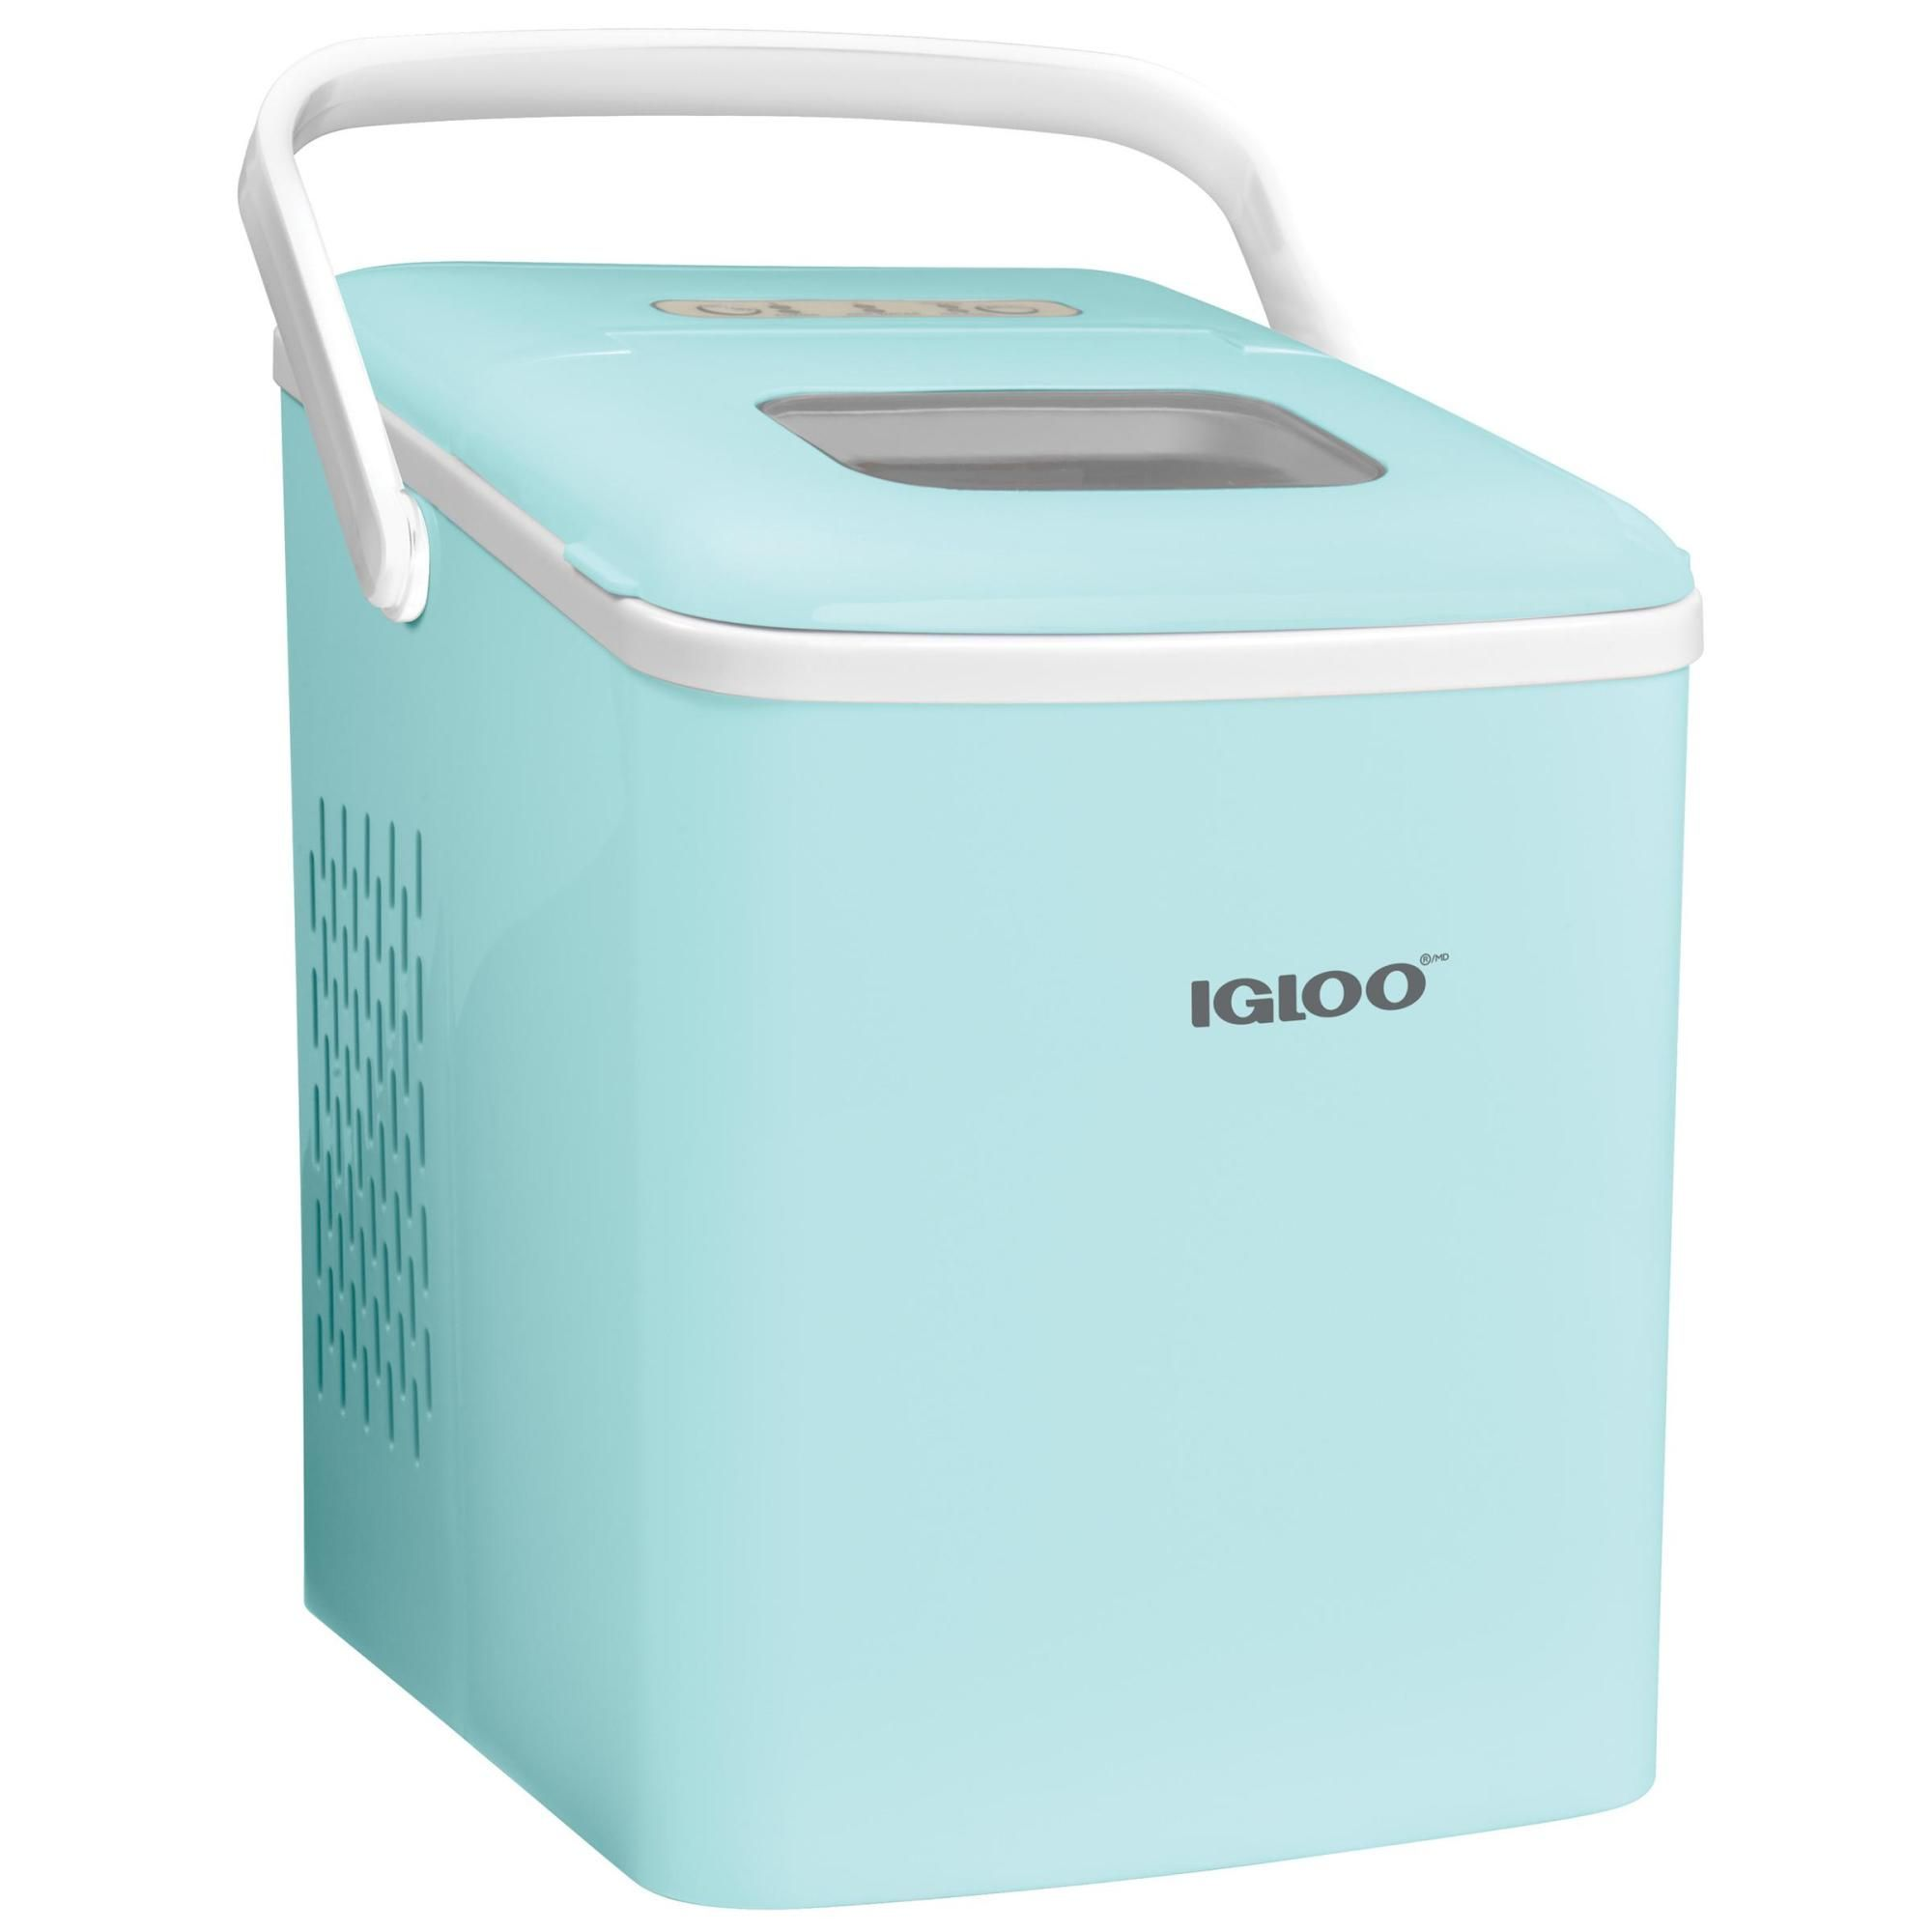 Igloo Iceb26hnaq 26 Pound Automatic Self Cleaning Portable Countertop Ice Maker Machine With Handle Aqua In 2020 Ice Maker Machine Ice Maker Ice Storage